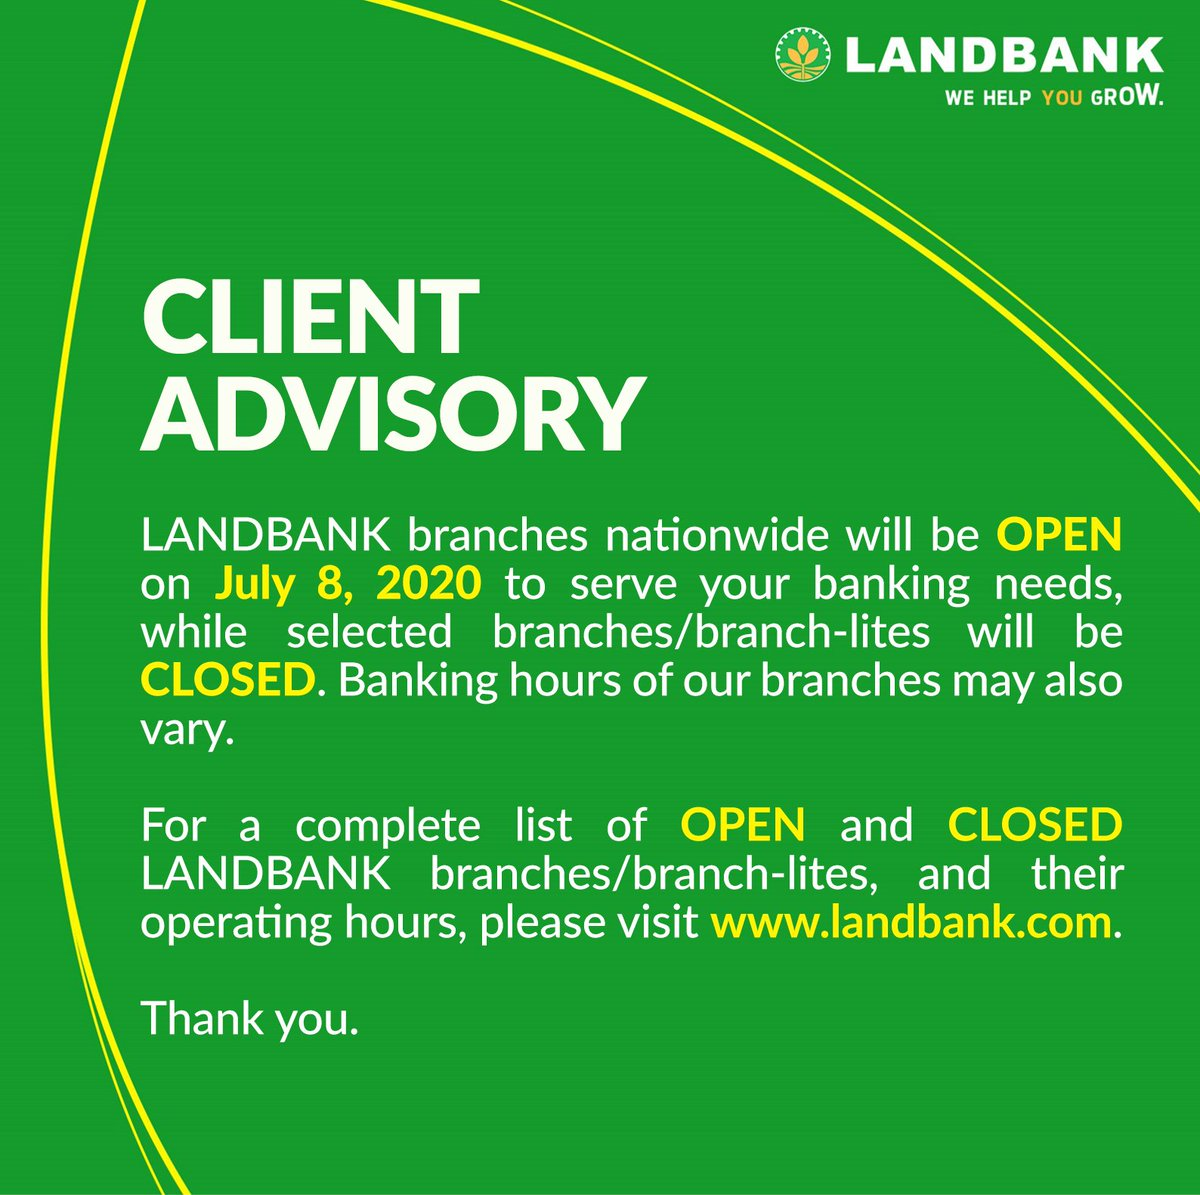 #LANDBANKClientAdvisory  To see the full list of OPEN branches, visit https://t.co/D6agUyIMZM  To see the full list of CLOSED branches, visit https://t.co/m9oz8HEAWs https://t.co/rZecMXUPx6